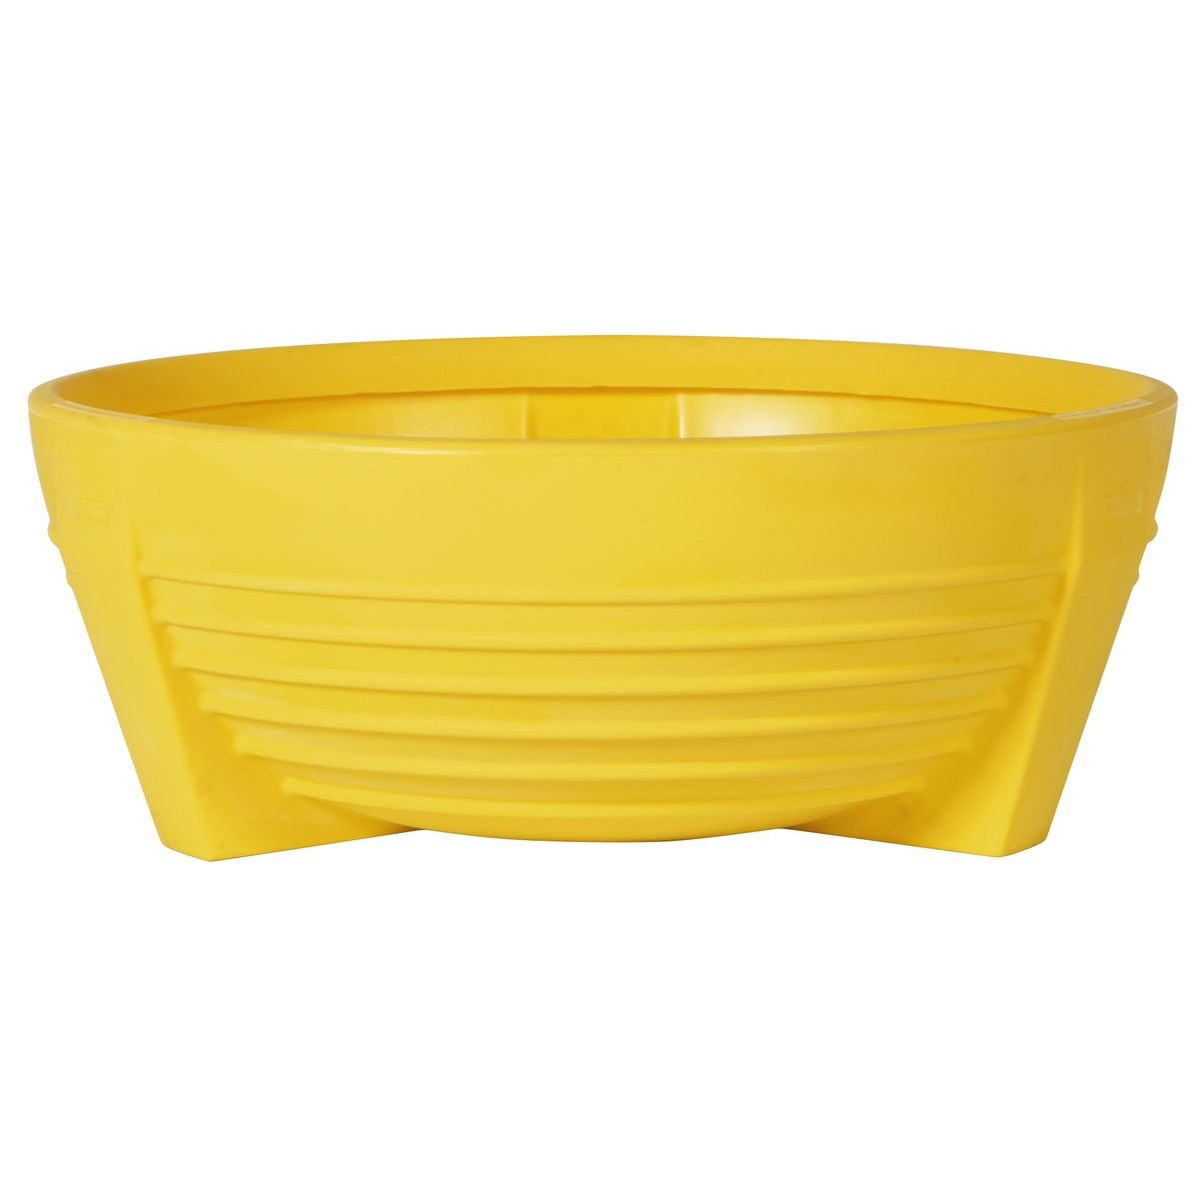 Circular yellors flower box of Polypropylene futura P-300